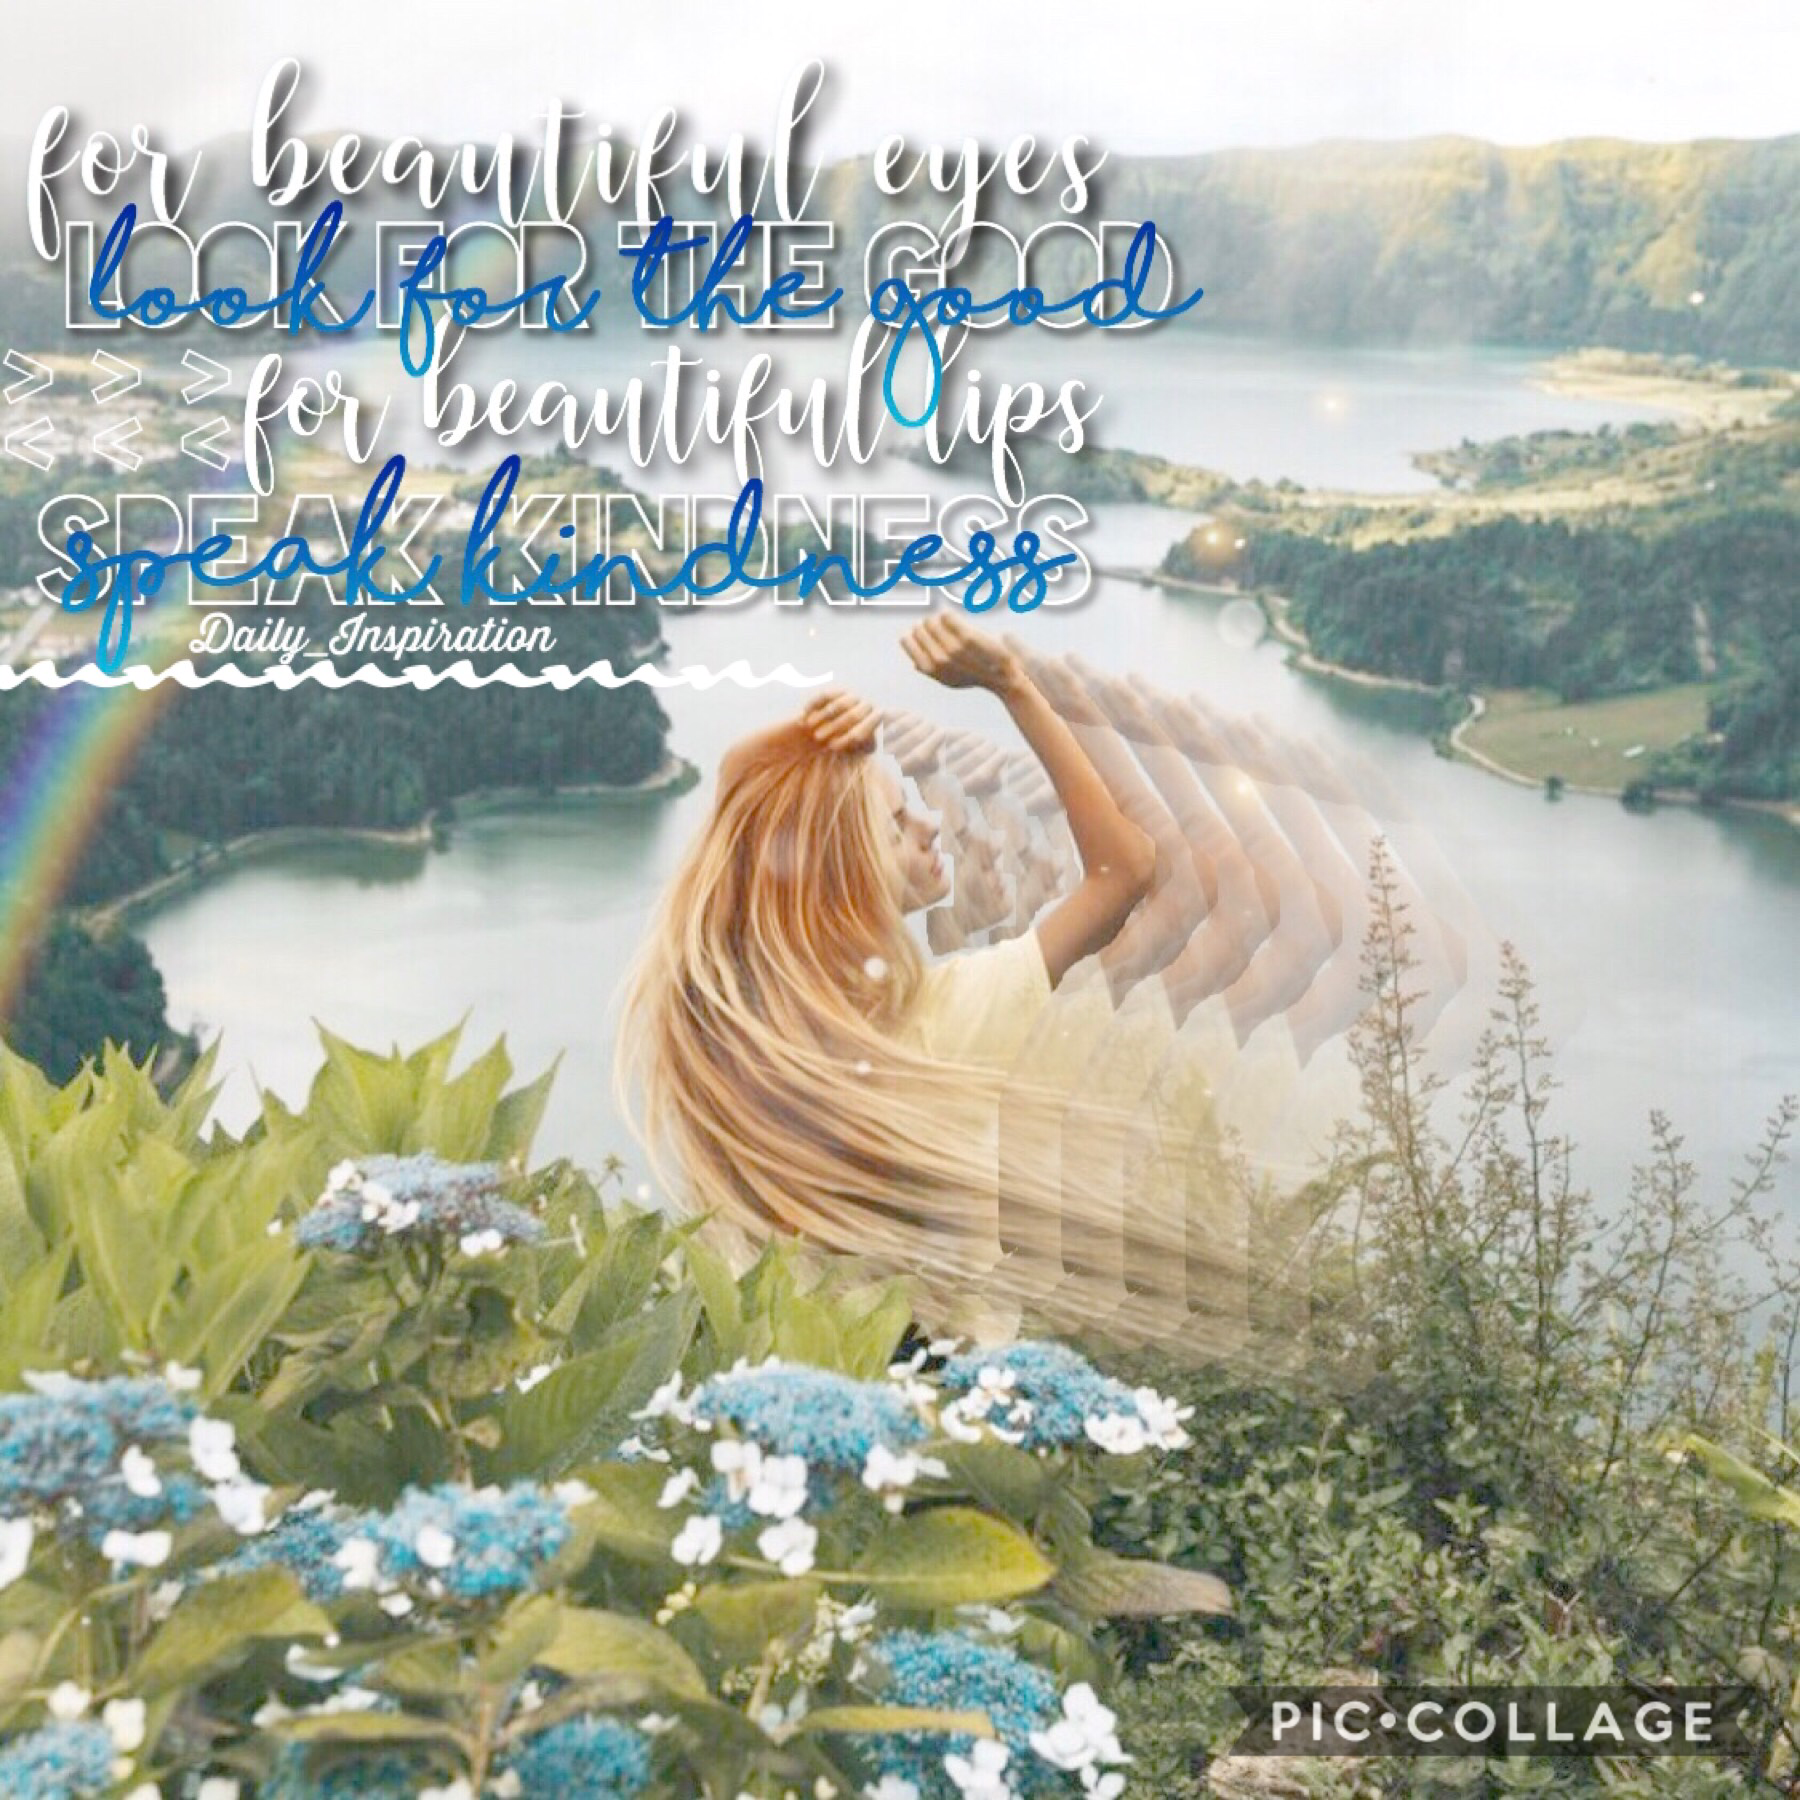 ✨tap✨ hello lovelies💗 have an amazing day😊💗 QOTD:favorite artists? AOTD: Van Gogh, Claude Monet, Andy Warhol, and many more! 44th collage 8/25/2018